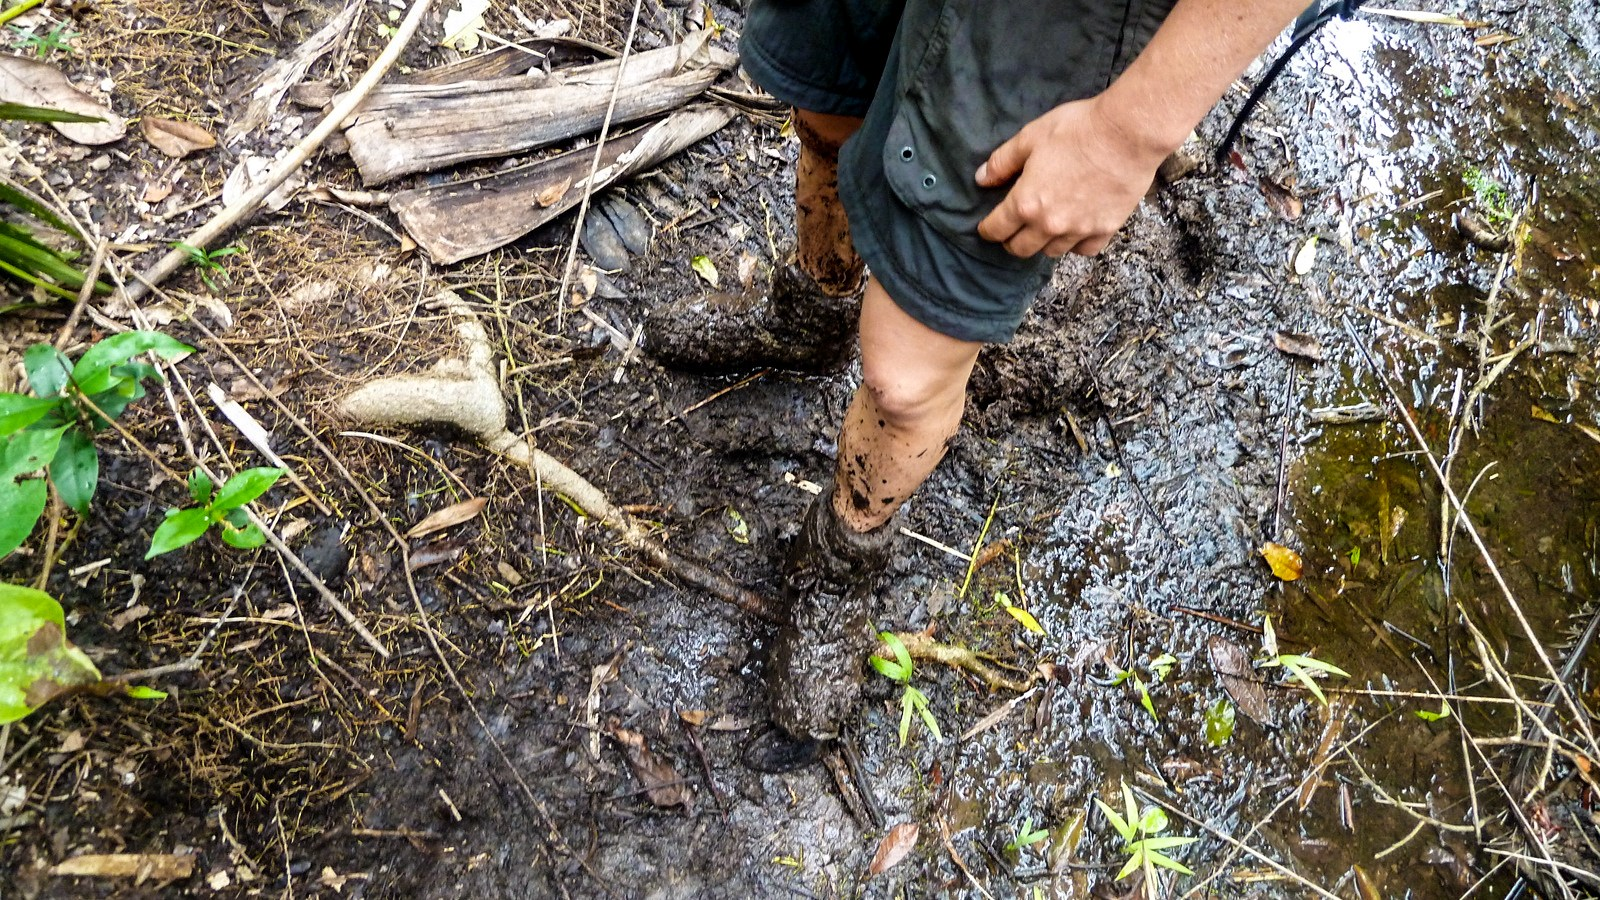 a photo of mud covered hiking boots.